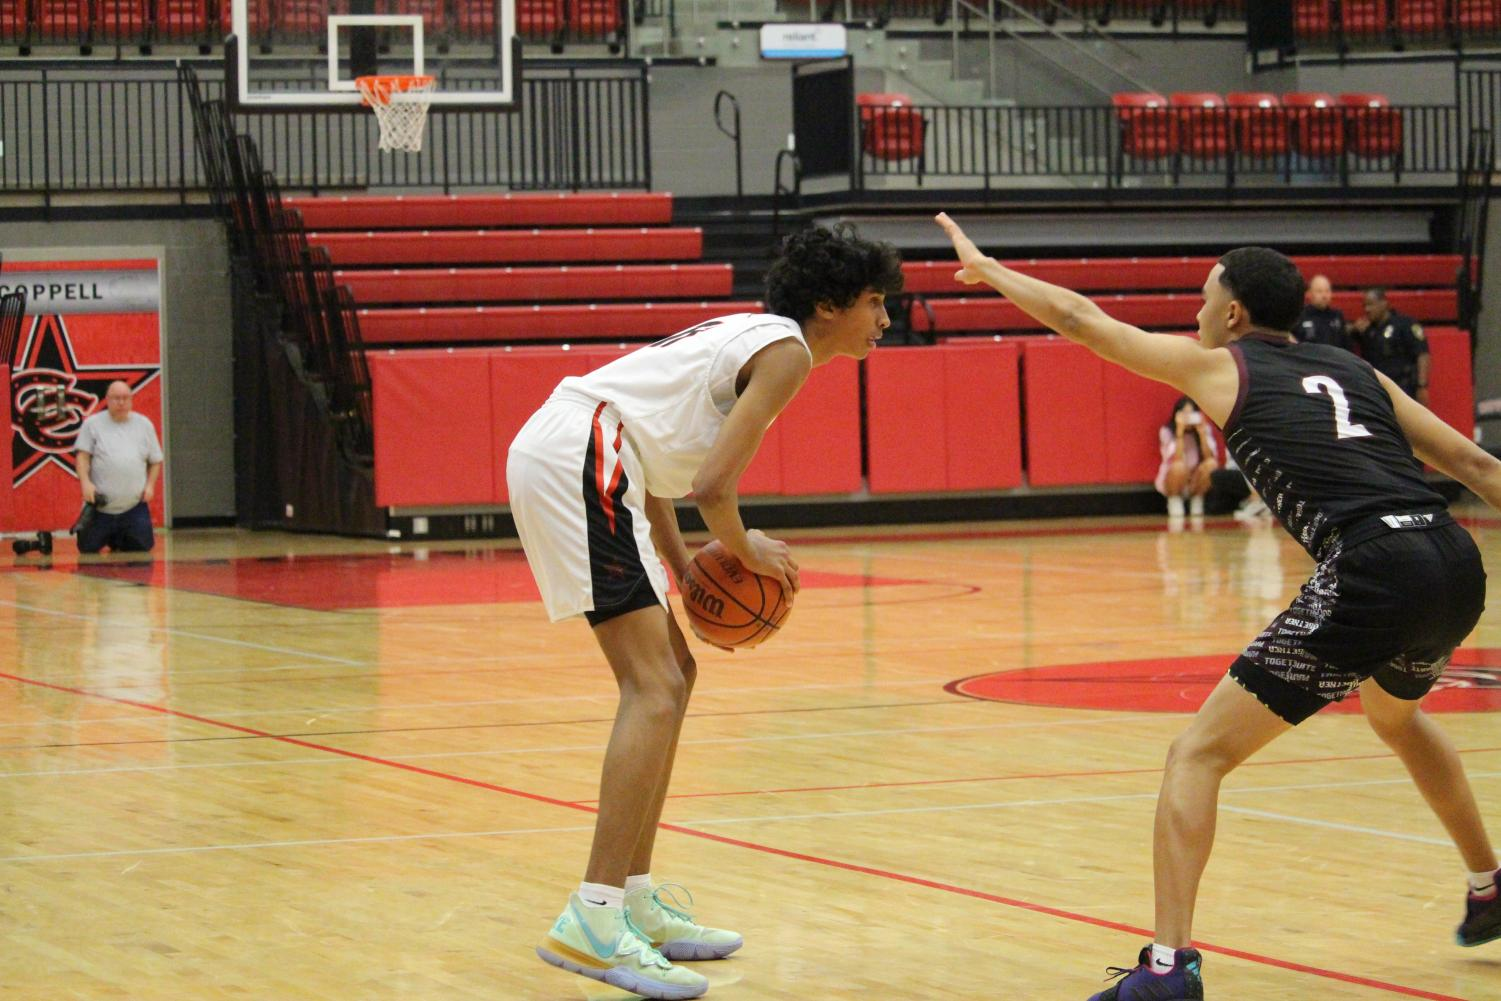 Coppell sophomore guard Ryan Agarwal attempts to make a play in the CHS Arena earlier this season against Timber Creek. The Cowboys play Irving tomorrow in the CHS Arena at 8 p.m.